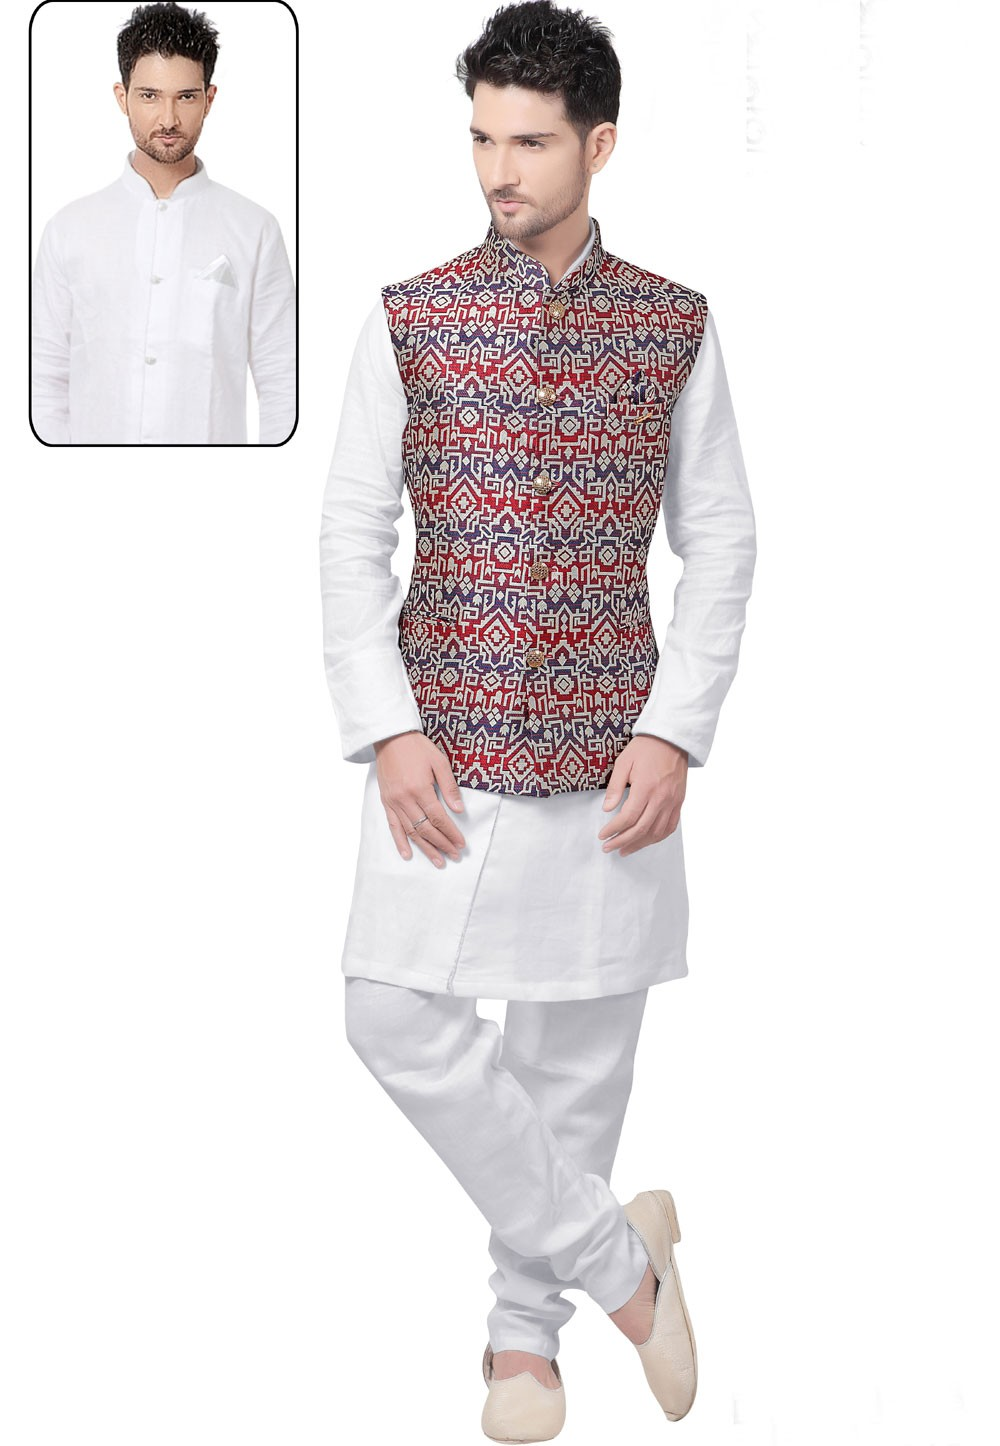 Exquisite White,Blue Color Men's Latest Kurta Pajama with Nehru Jacket